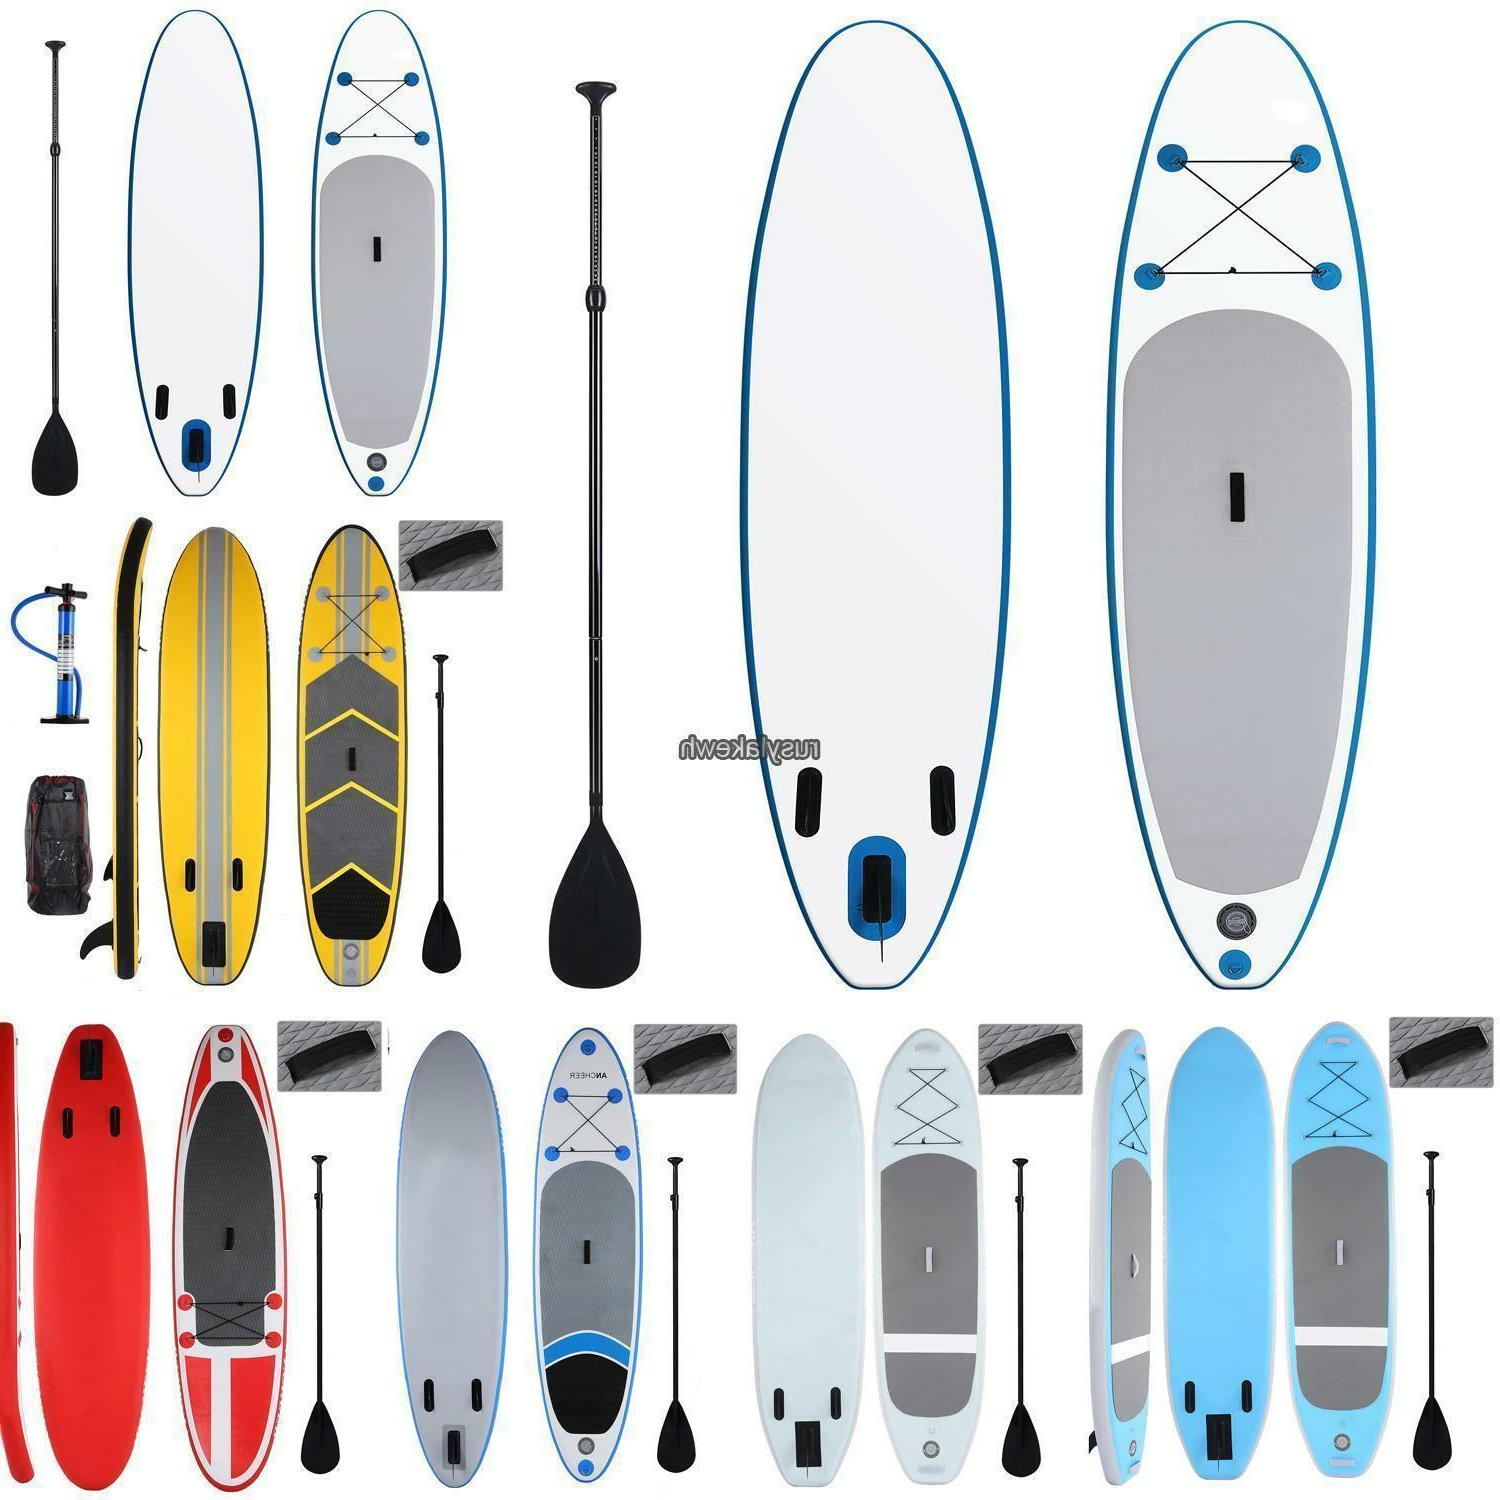 10 inflatable sup stand up paddleboards paddle